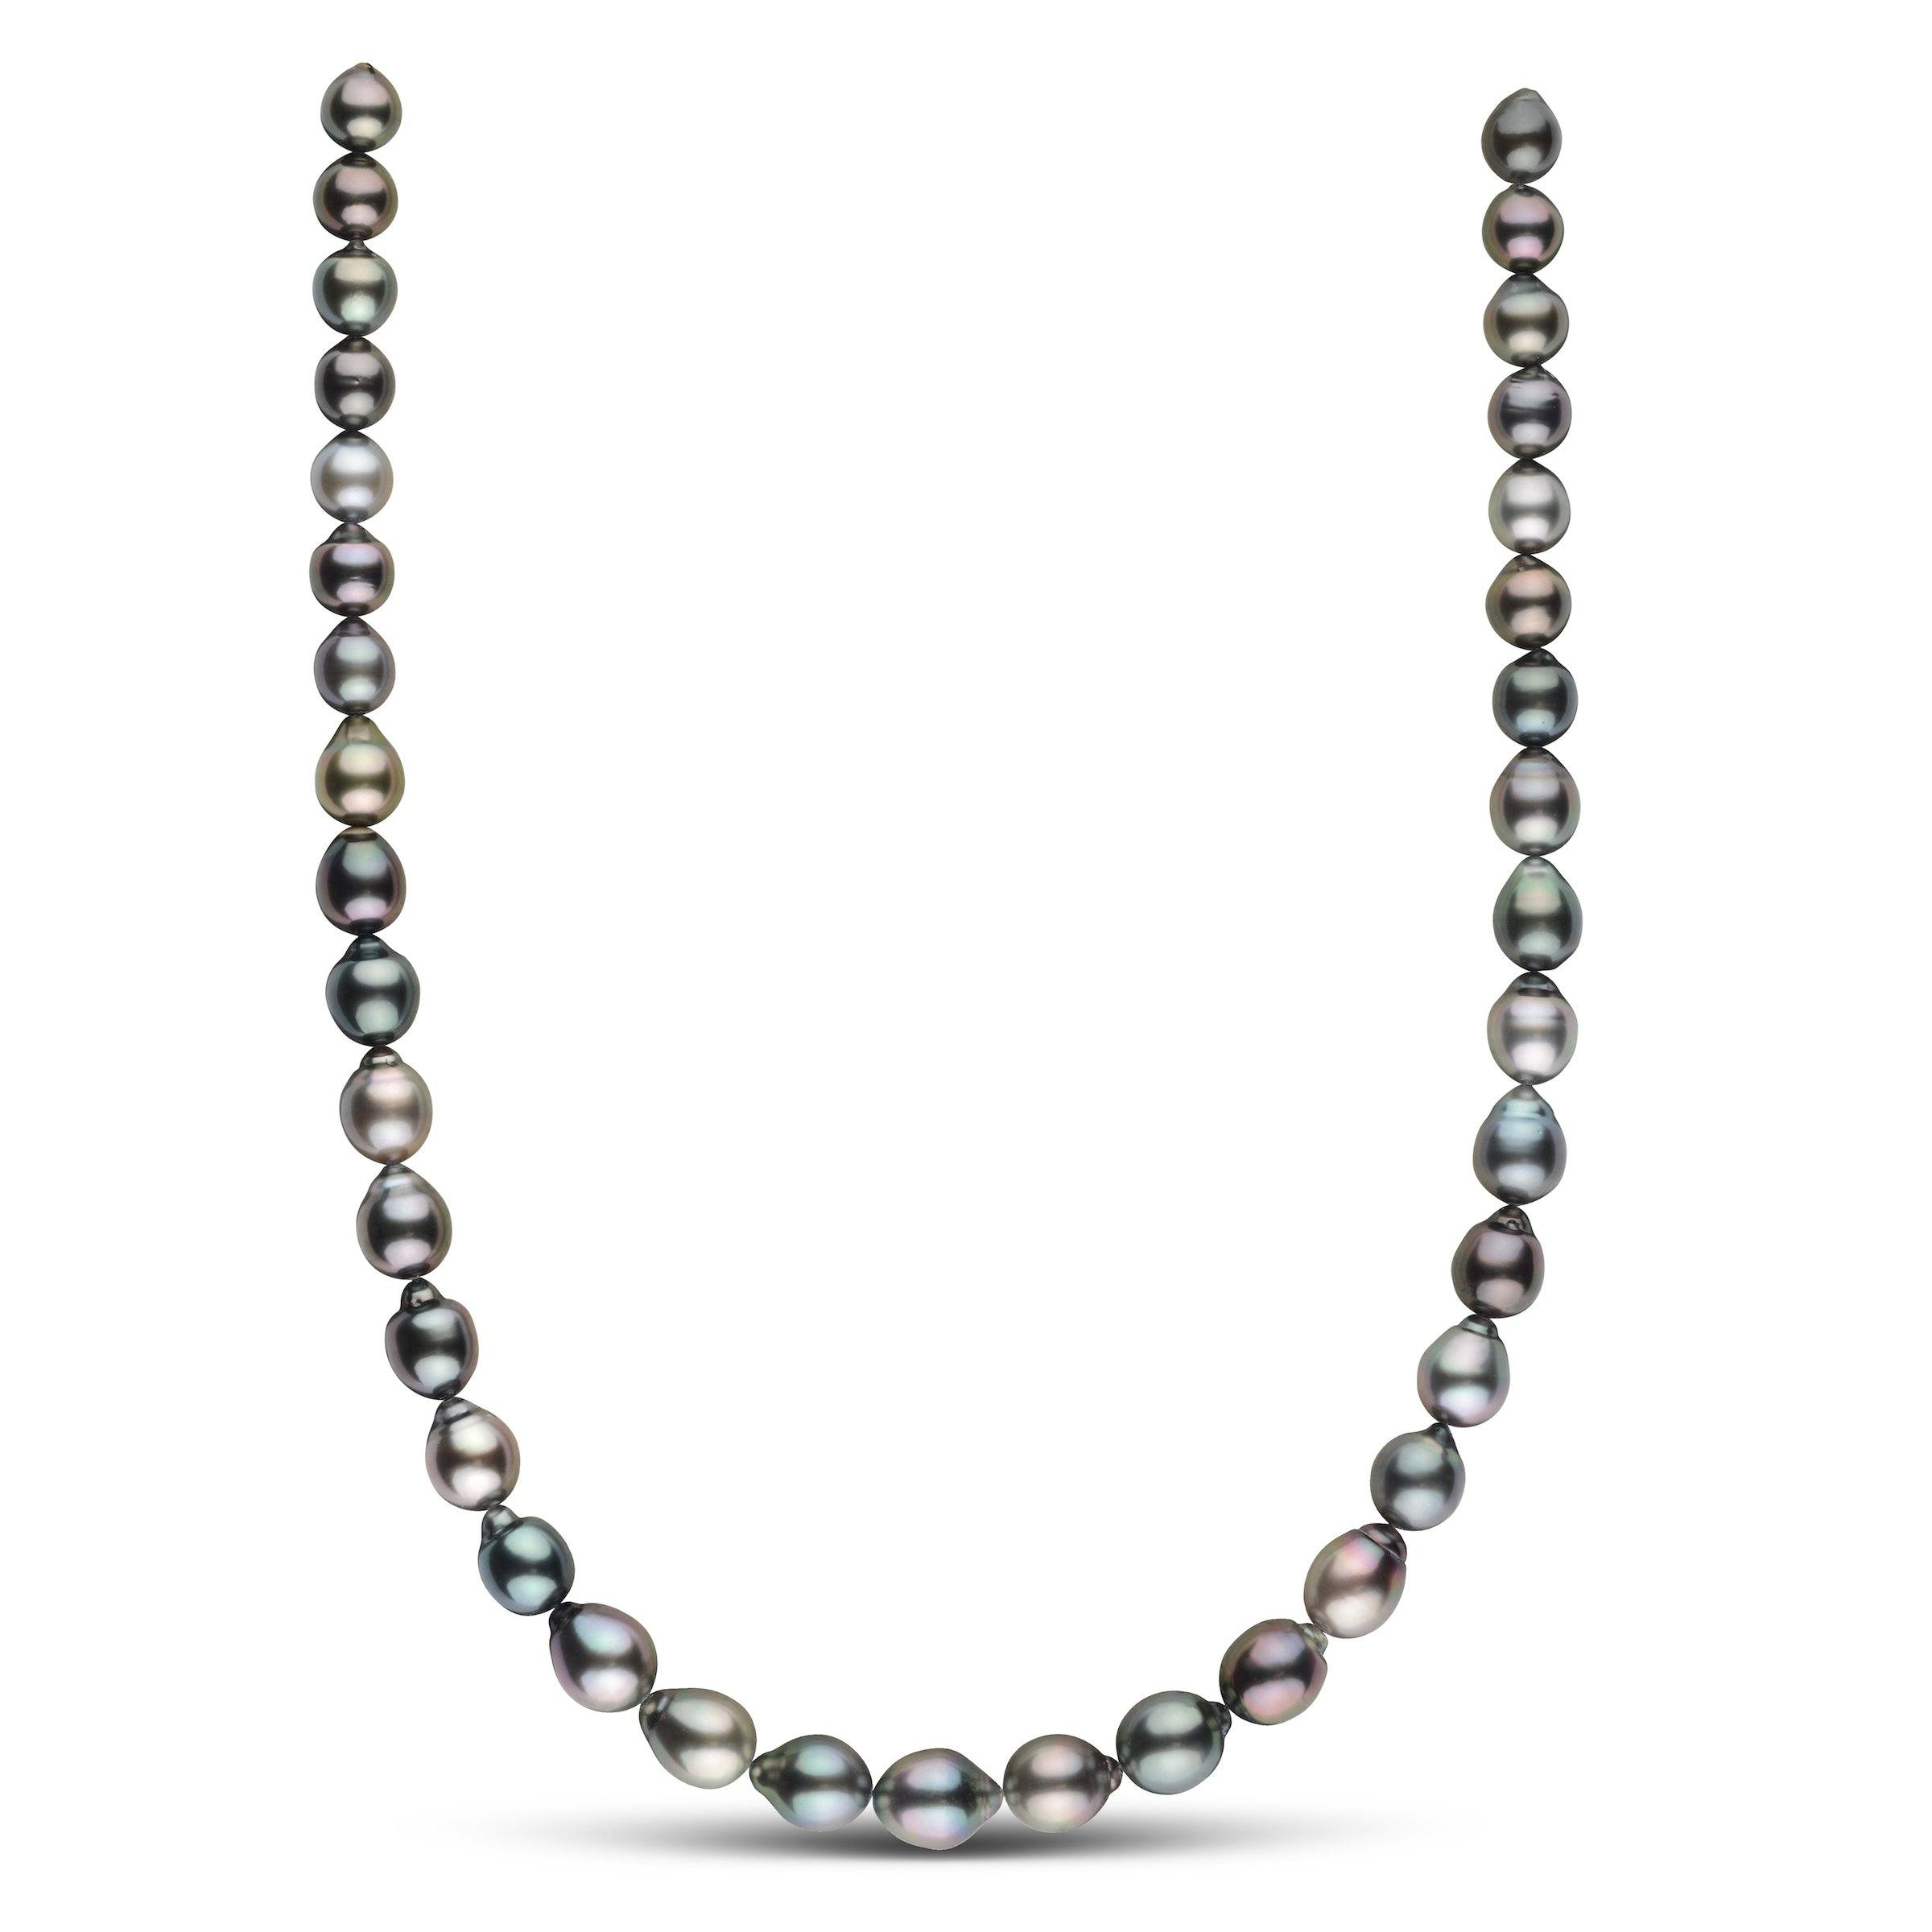 8.5-10.4 mm AAA Tahitian Drop Pearl Necklace